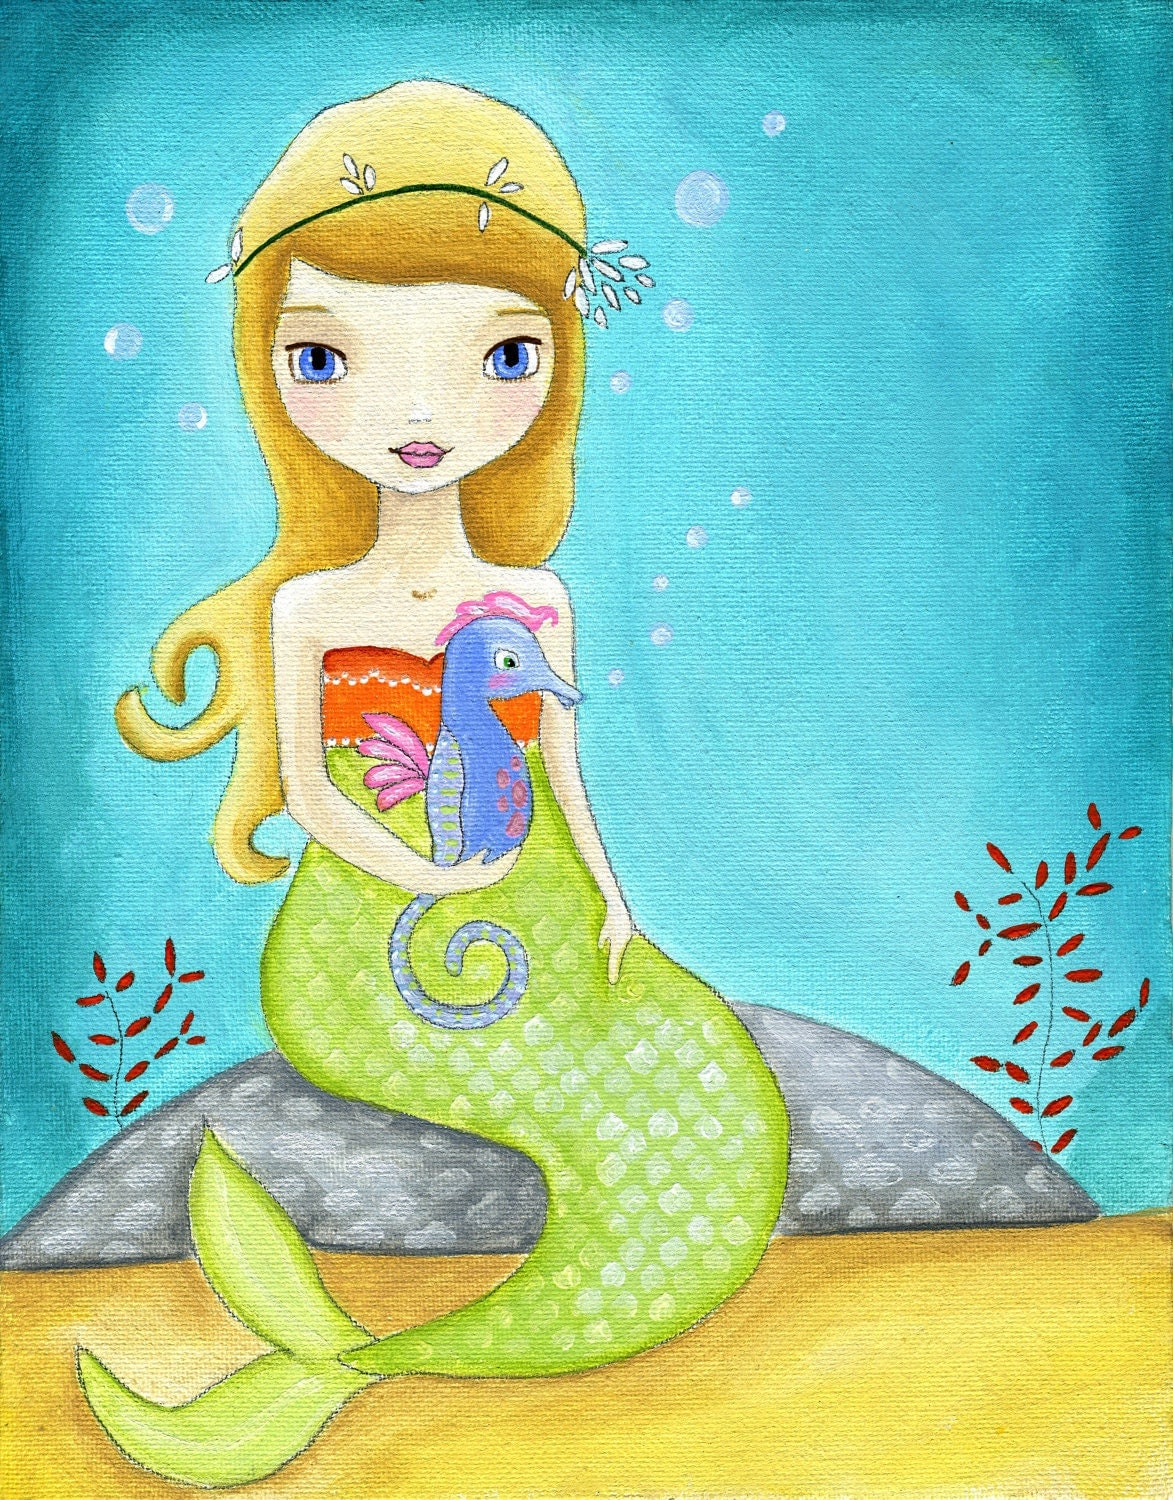 Mermaid Seahorse Nautical Kids Art Print by lindsayart on Etsy